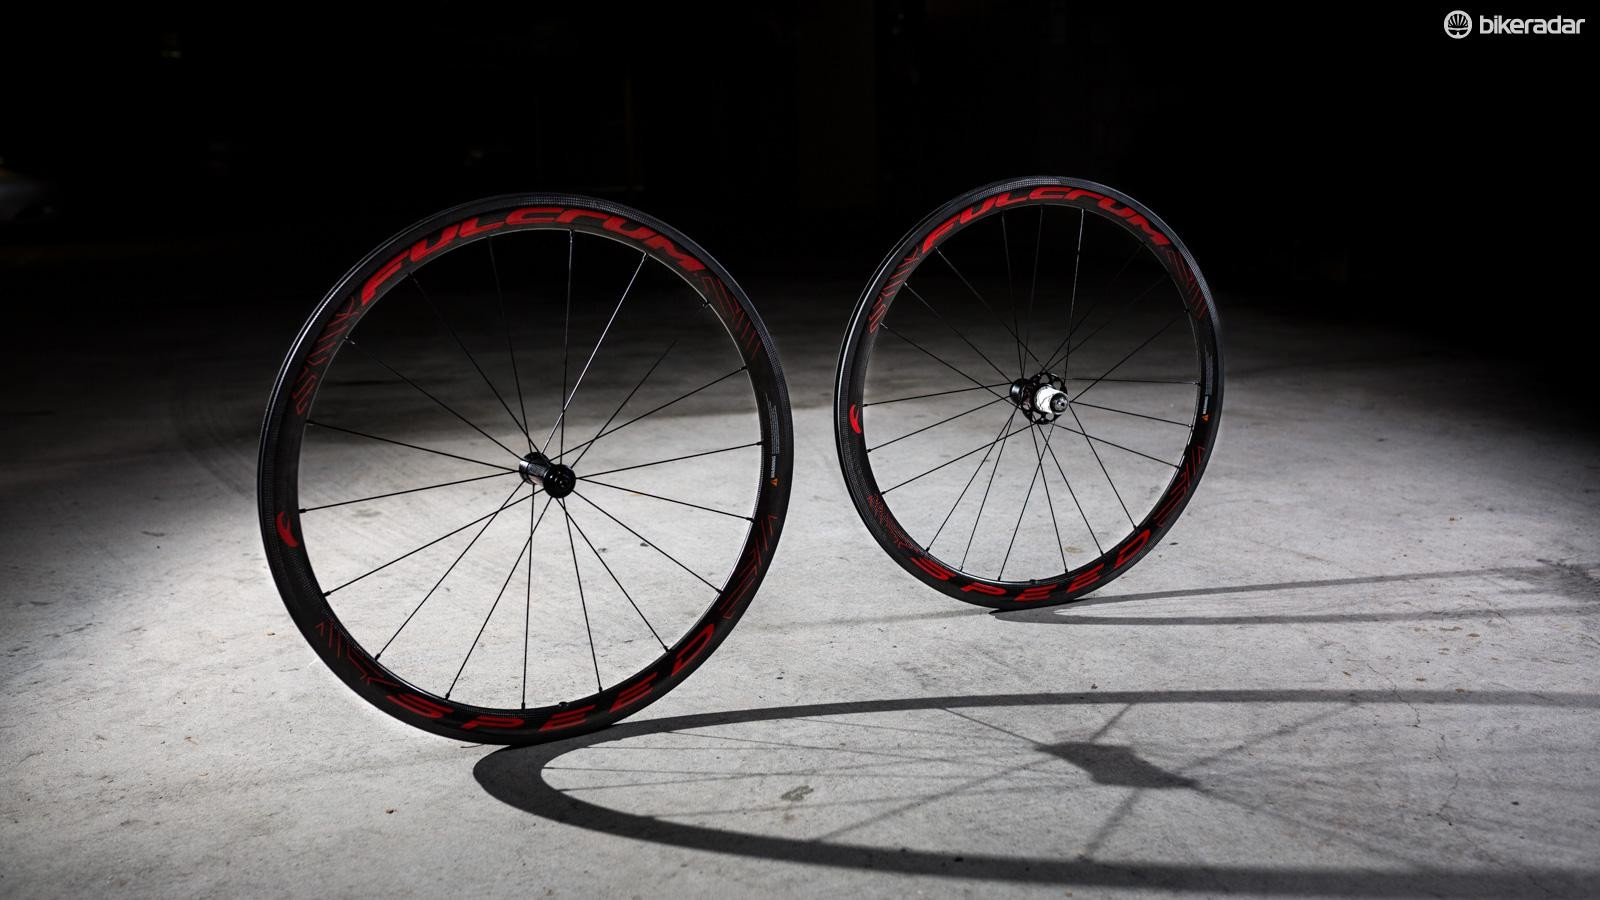 Fulcrum says its new Speed 40 offers the performance benefits of a tubular wheelset without the hassle of tubular tyres